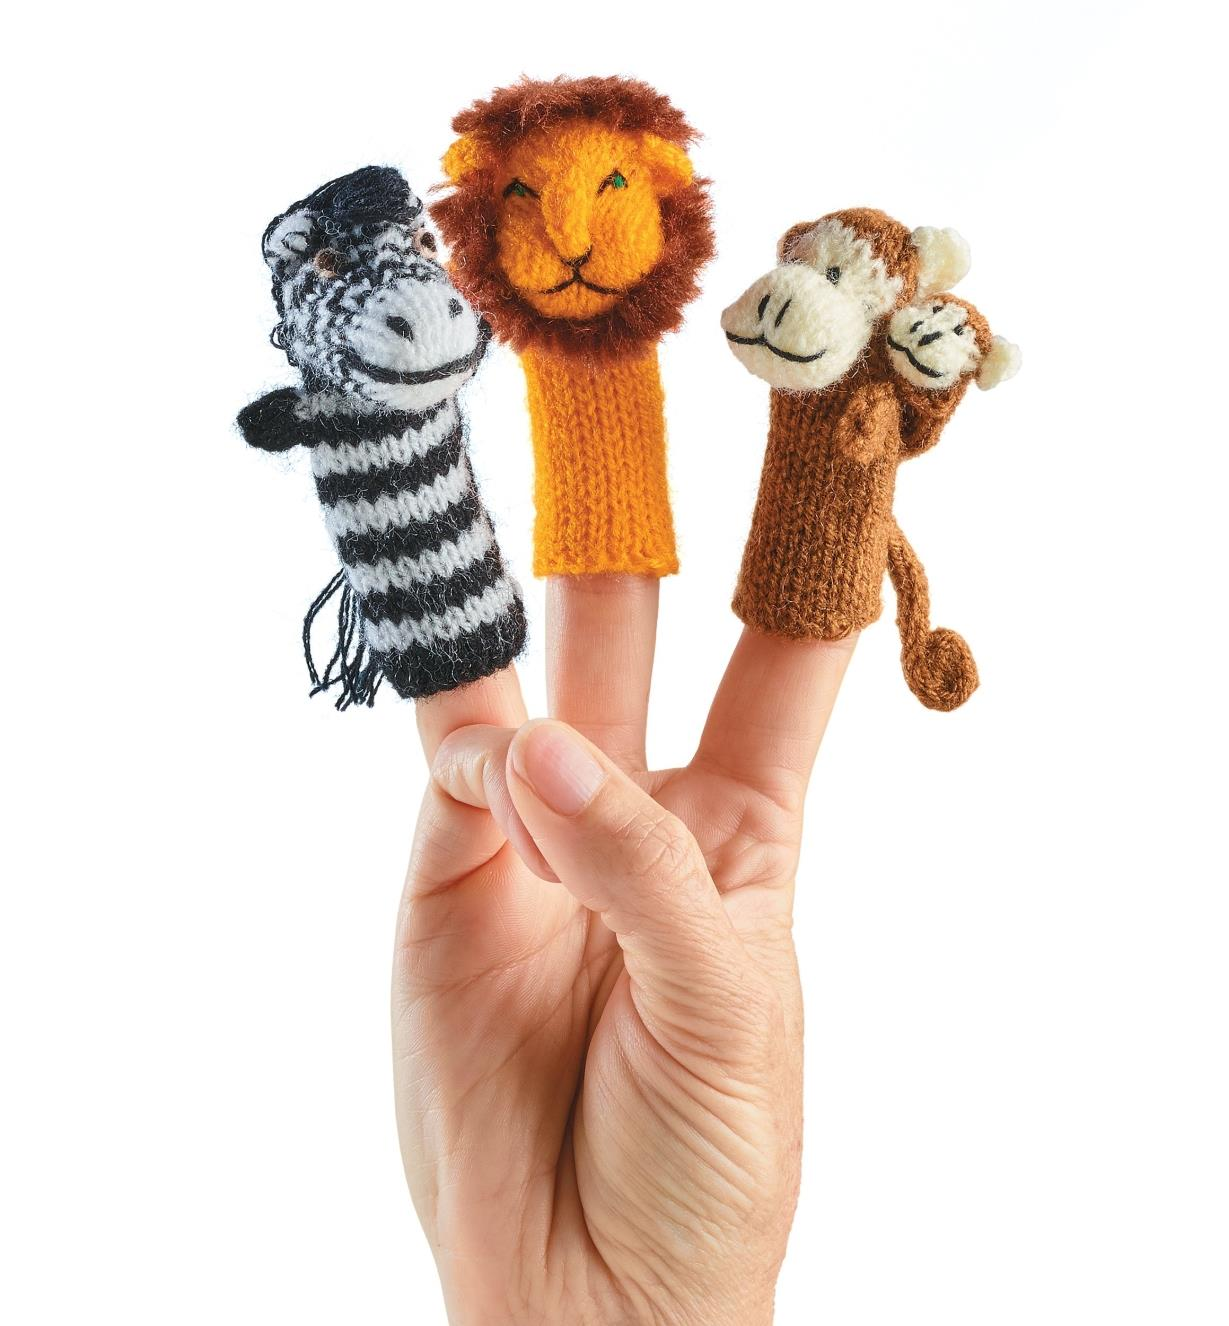 Zebra, lion and monkey from safari finger puppets on a person's hand